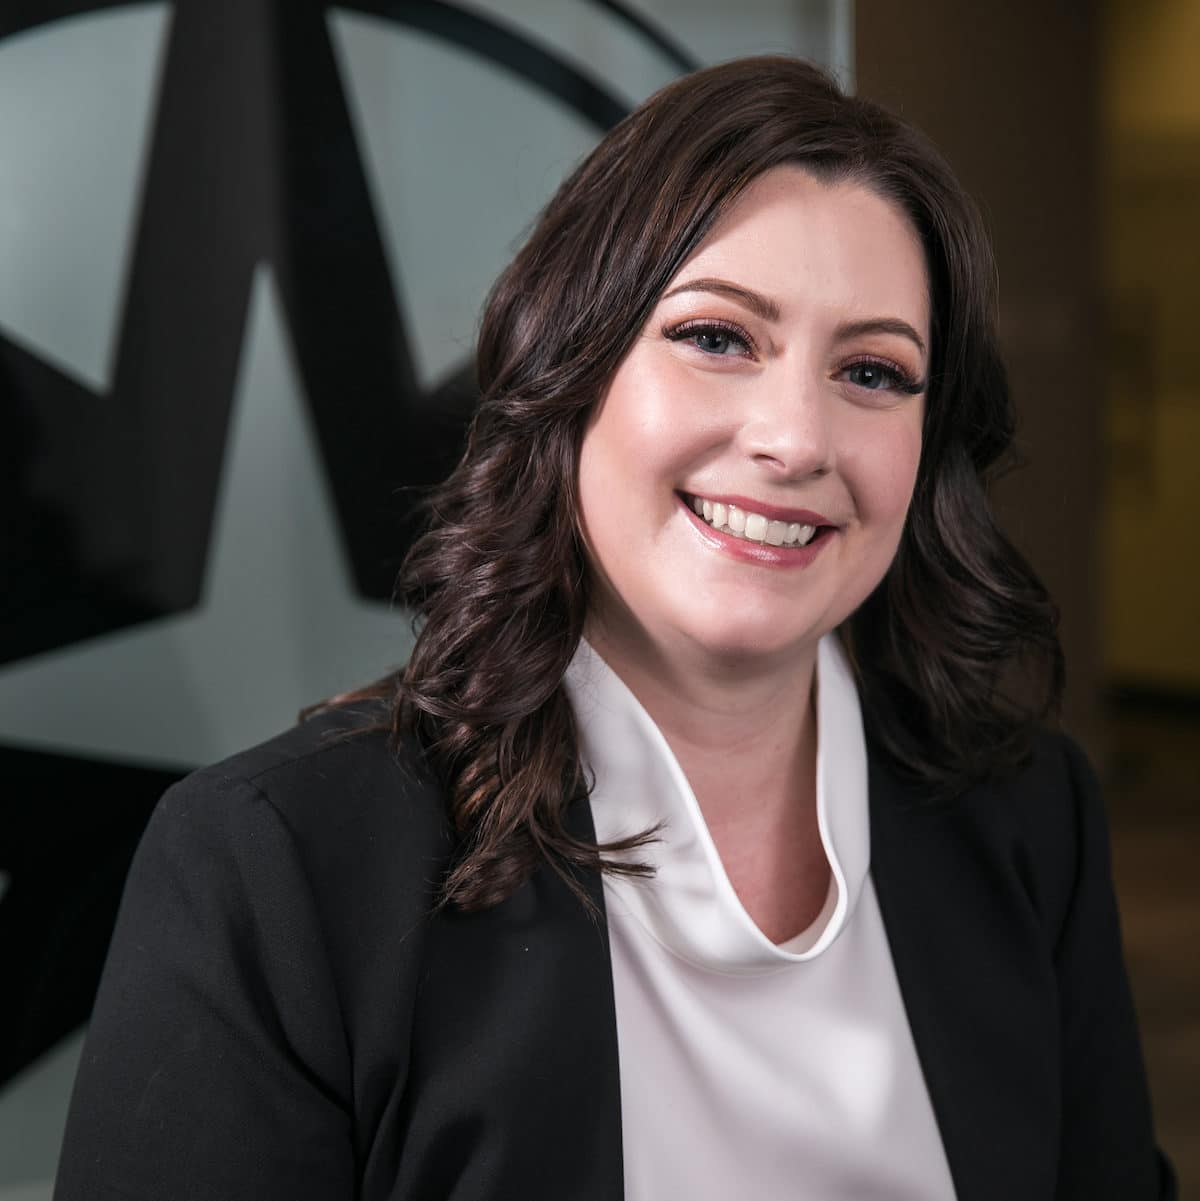 Jeneba Stewart is a Calgary lawyer at West Legal